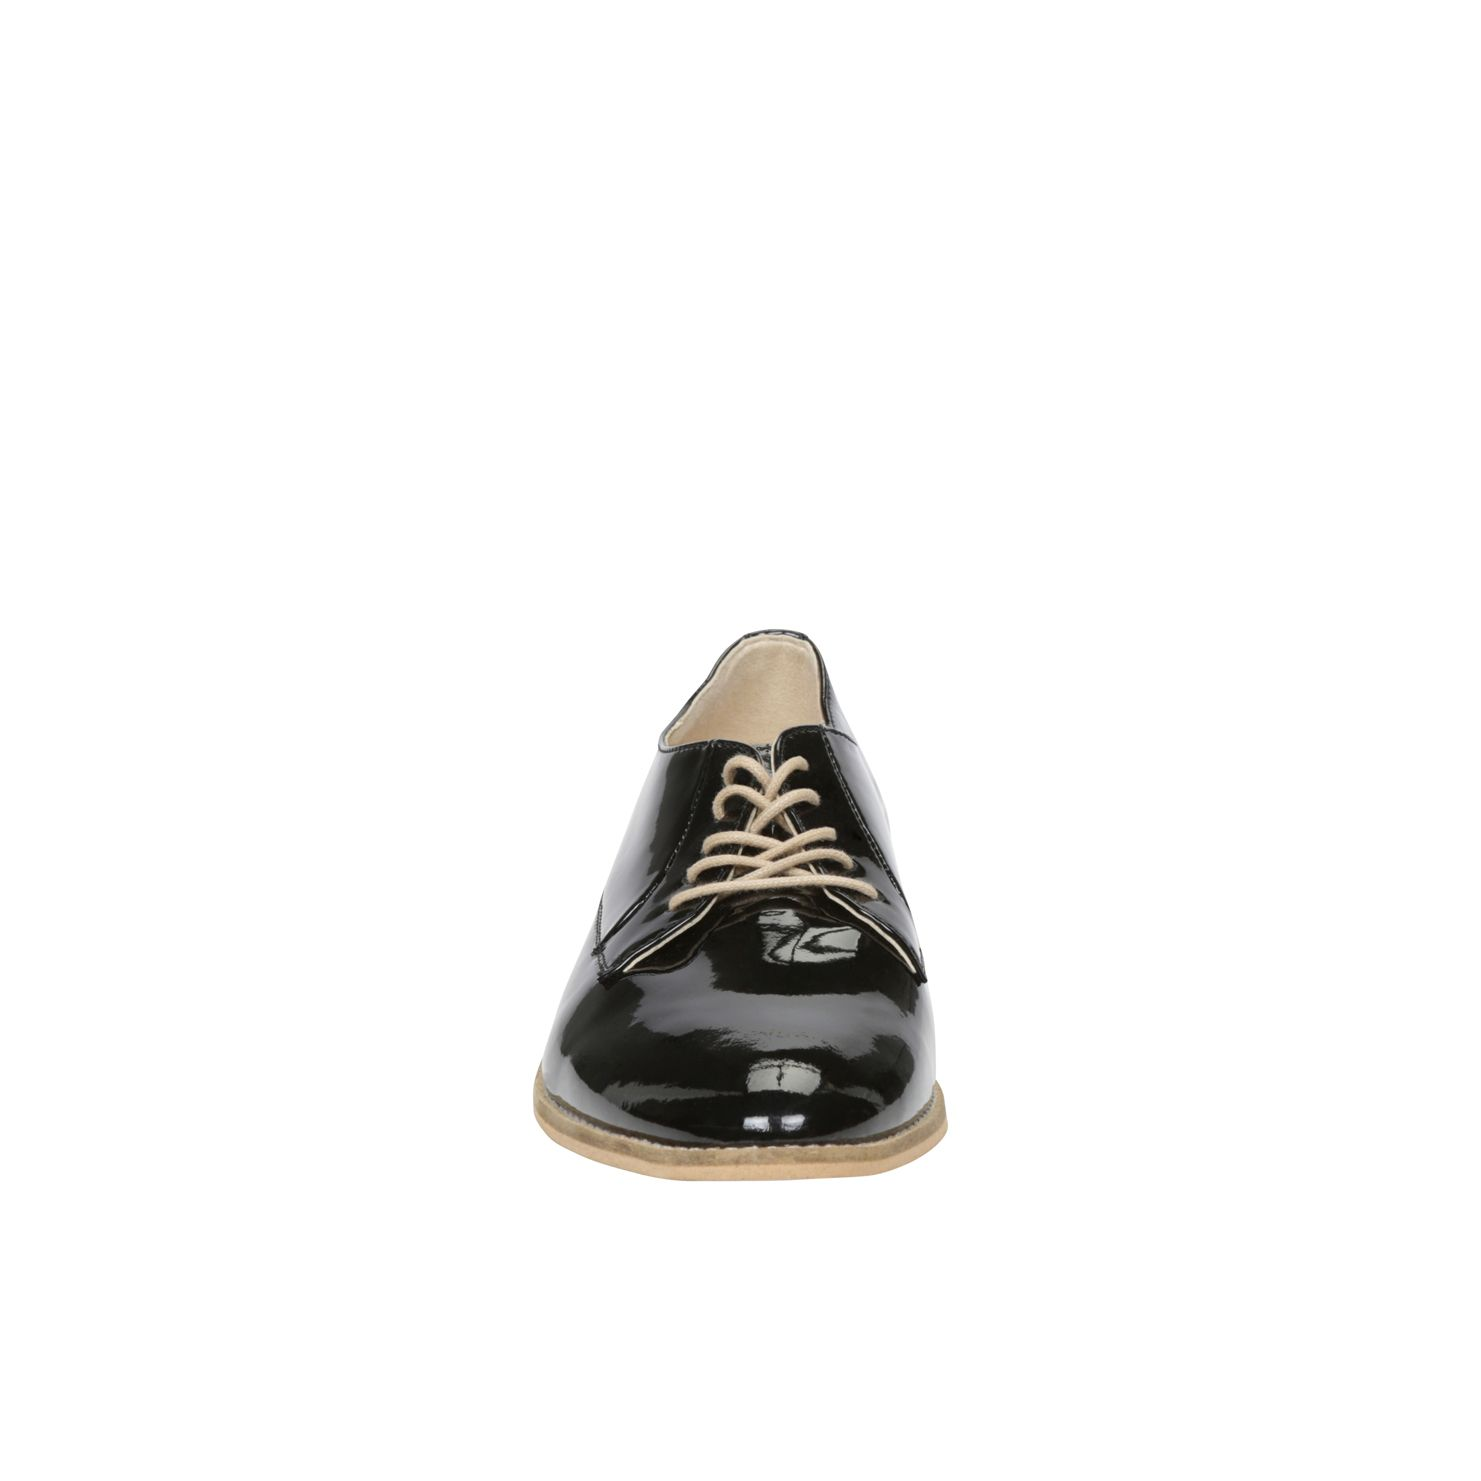 Onoadda lace up shoes